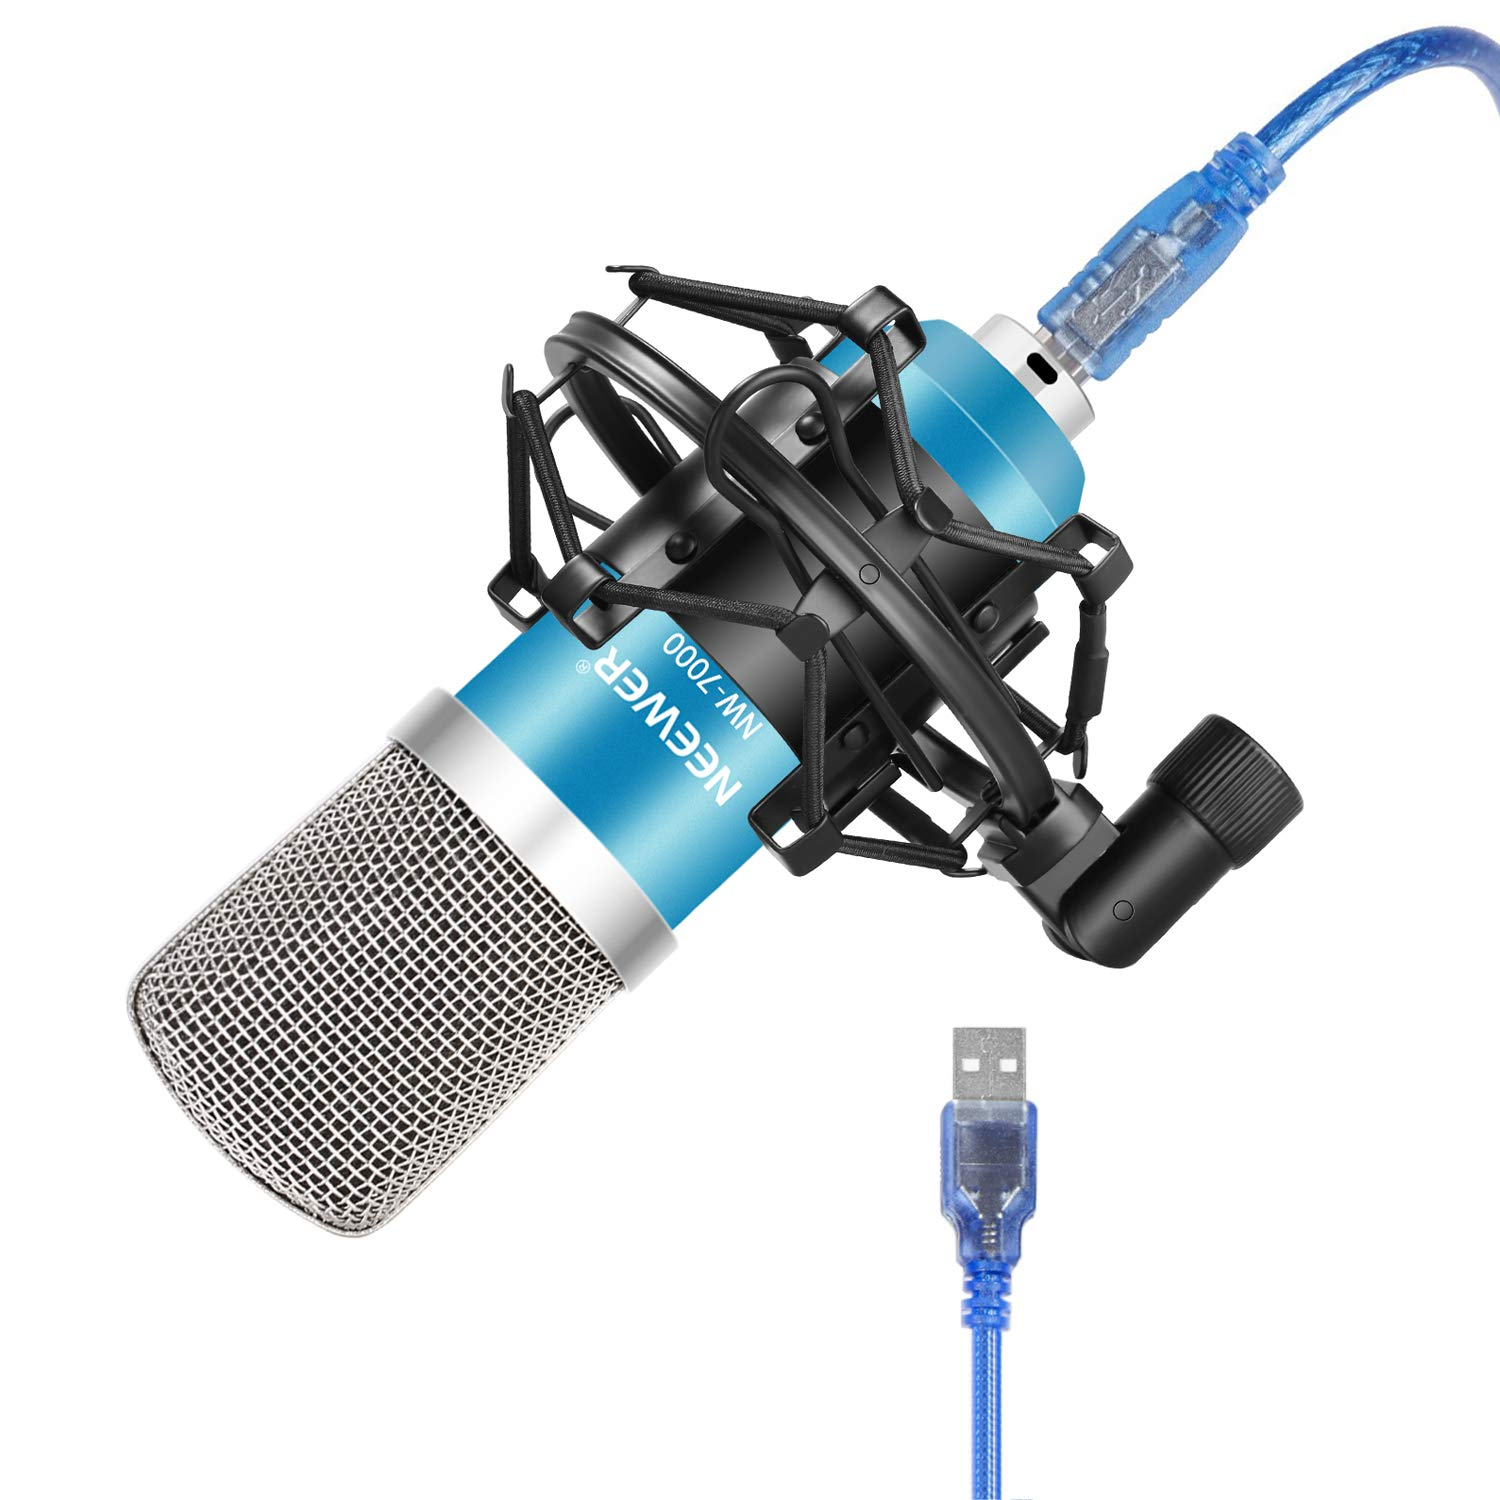 Neewer NW-7000 USB Condenser Microphone Kit for Windows and Mac with Metal Microphone Shock Mount, Ball-type Anti-wind Foam Cap, USB Audio Cable for Professional Studio Broadcasting(Blue and Silver) 40094035